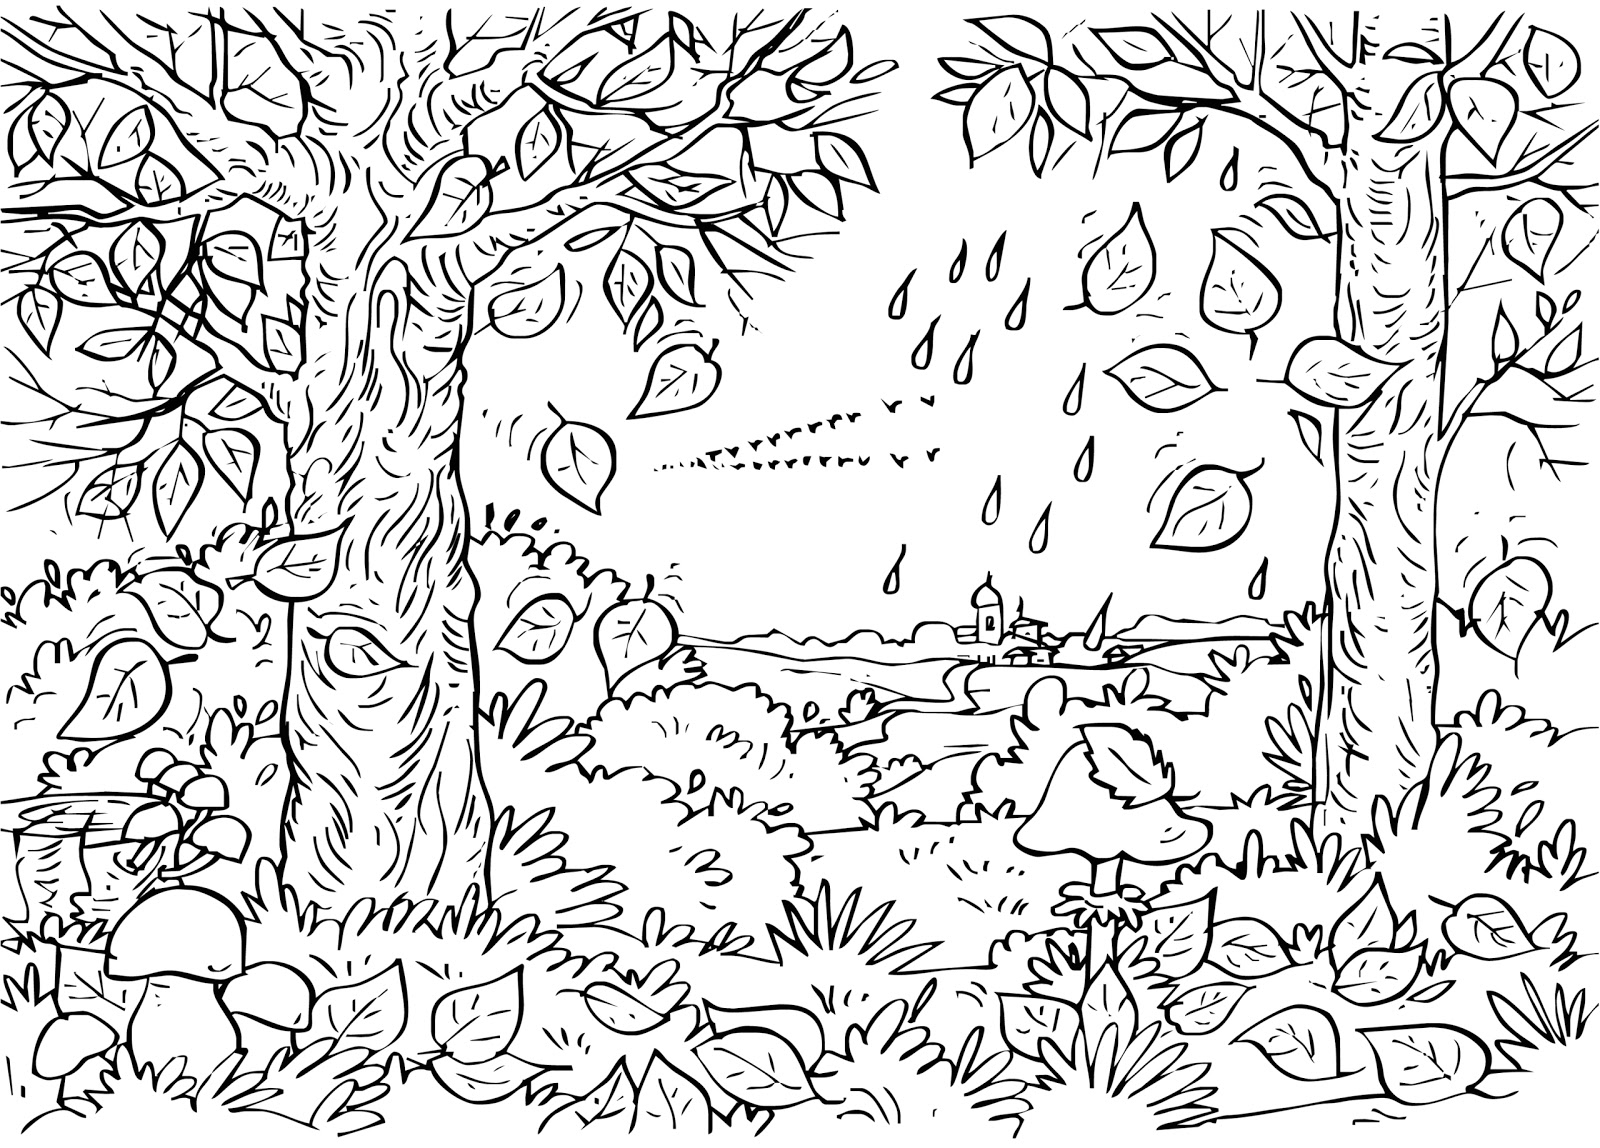 colouring pages of nature nature coloring pages to download and print for free of nature colouring pages